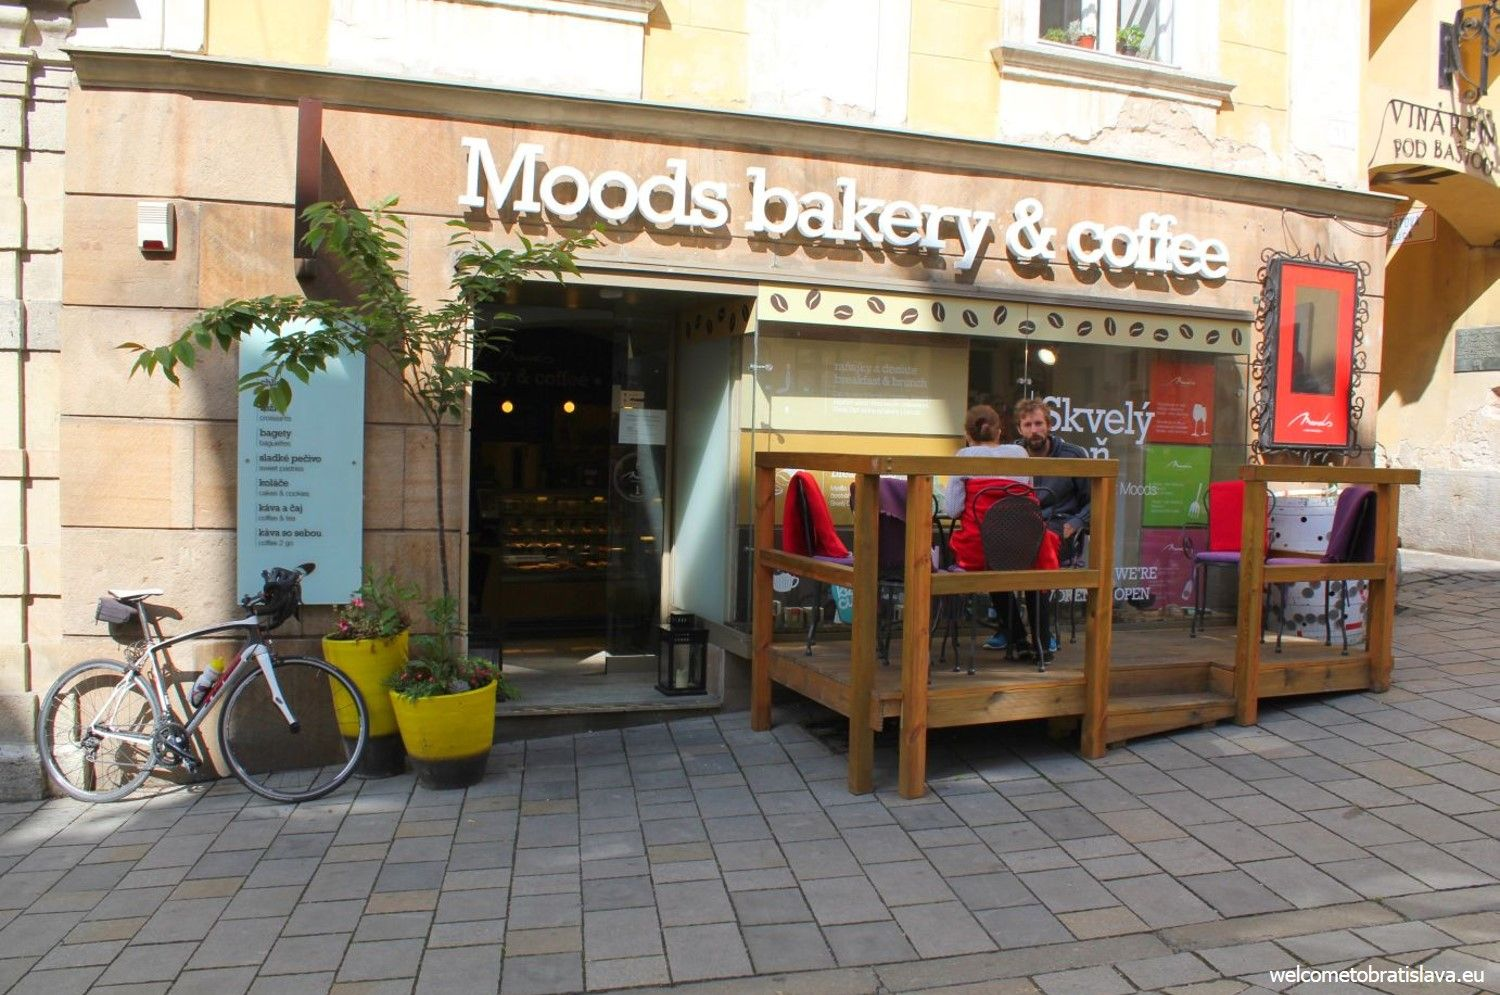 Entrance to the Moods Bakery